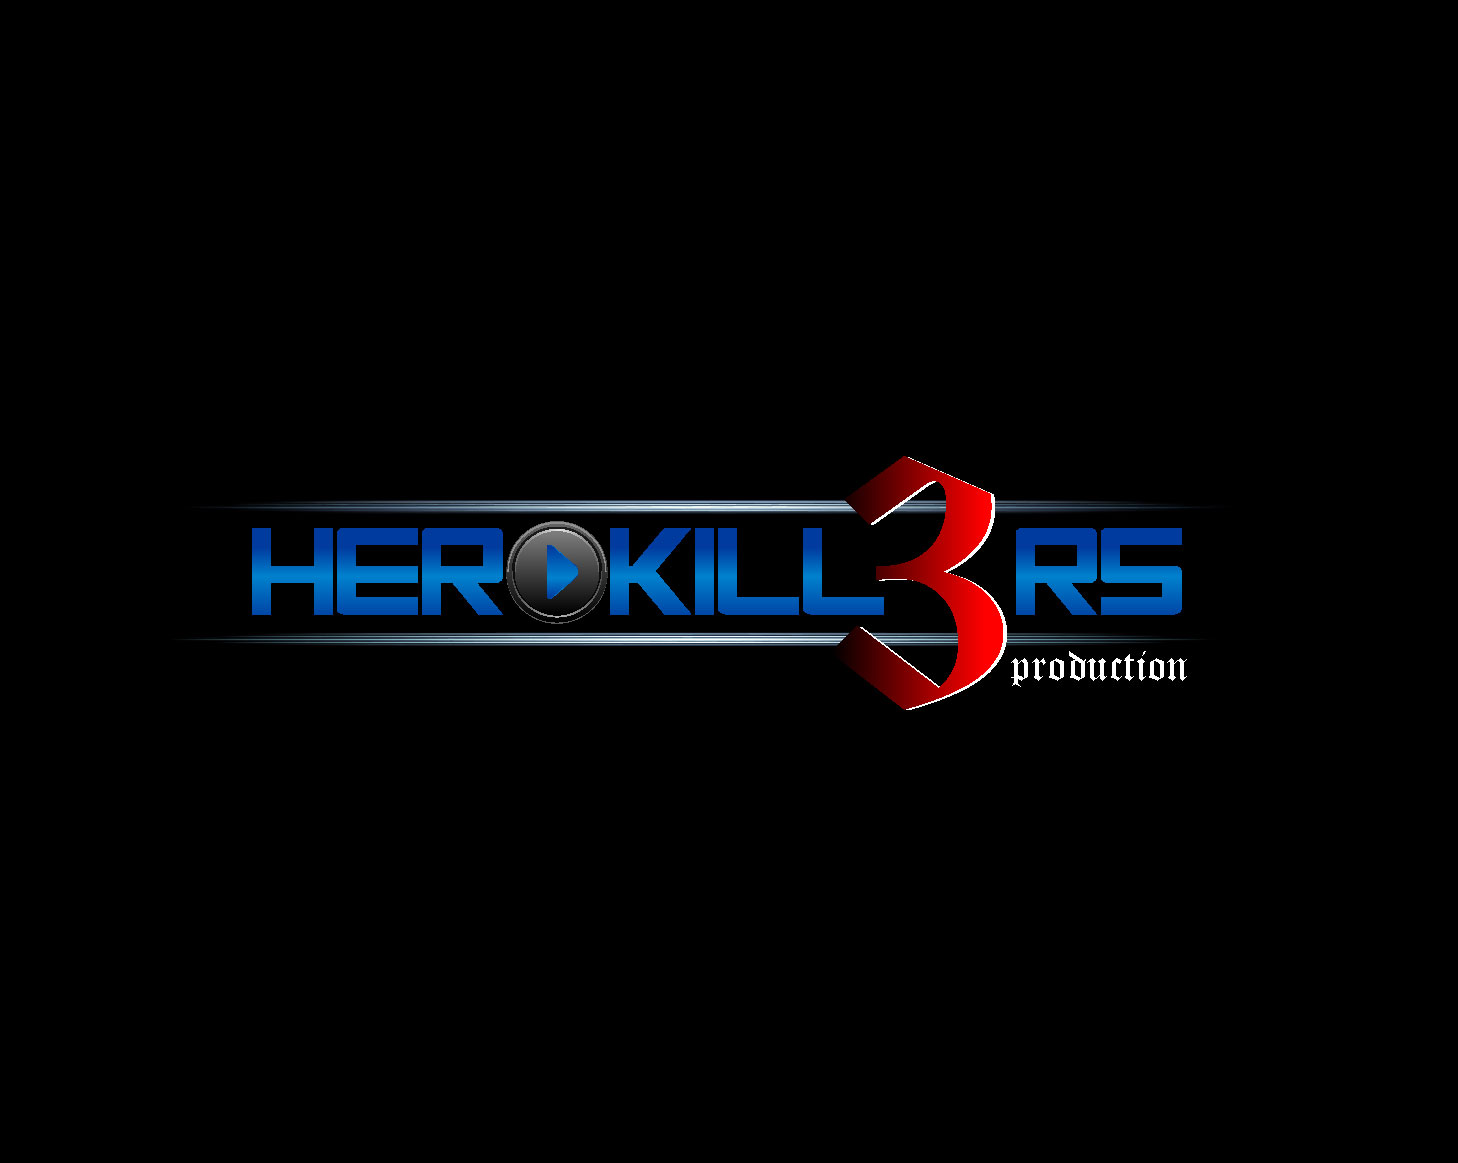 Logo Design by Rowel Samson - Entry No. 41 in the Logo Design Contest Fun Logo Design for HeroKill3rs.